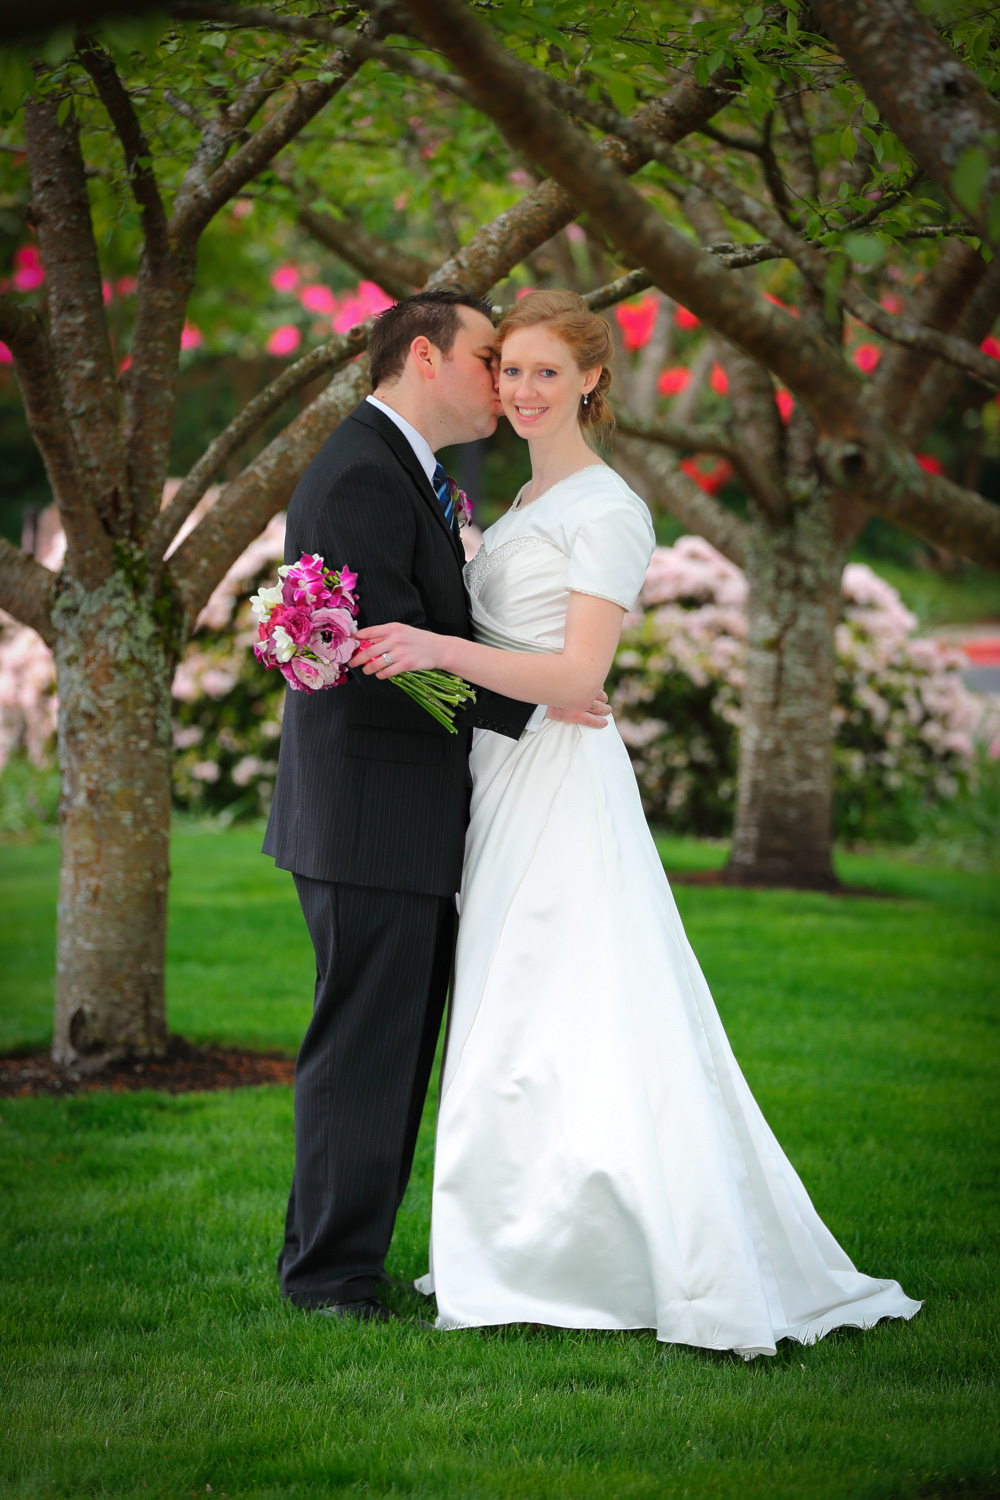 Wedding Photos LDS Temple Bellevue Washington12.jpg